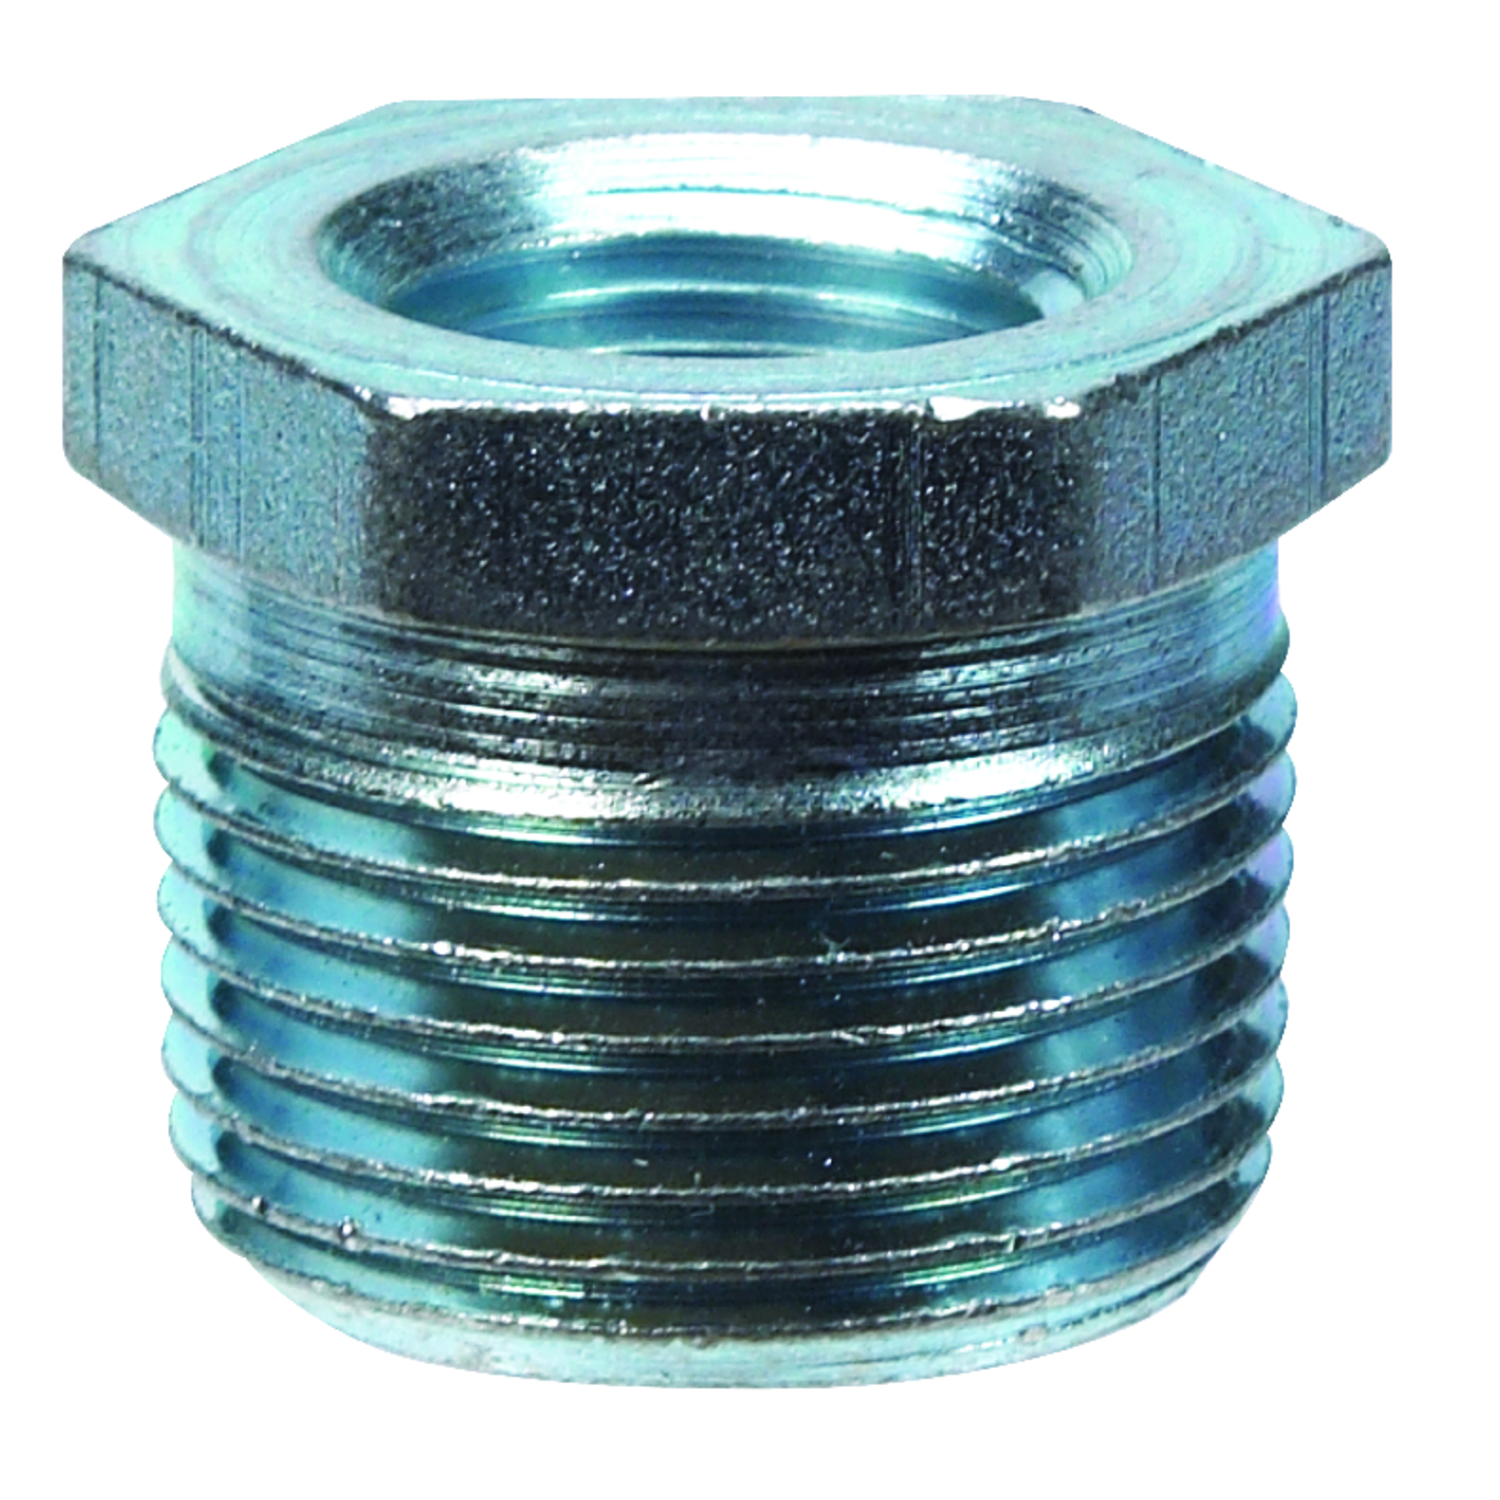 Billco  3/8 in. MPT  1/4 in. Dia. MPT  Galvanized  Galvanized Steel  Hex Bushing